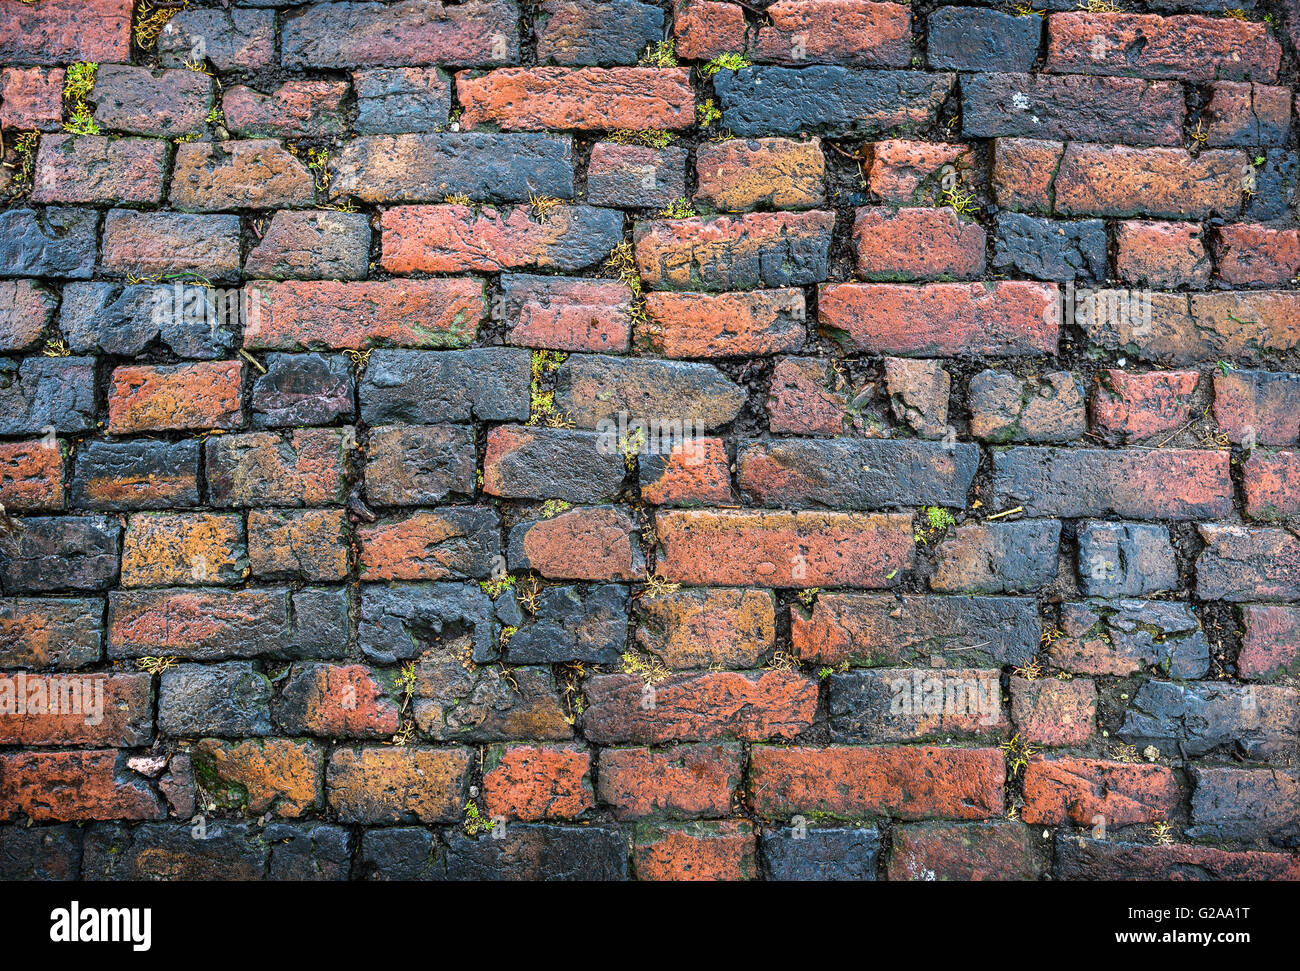 an-old-brick-cobbled-road-surface-G2AA1T